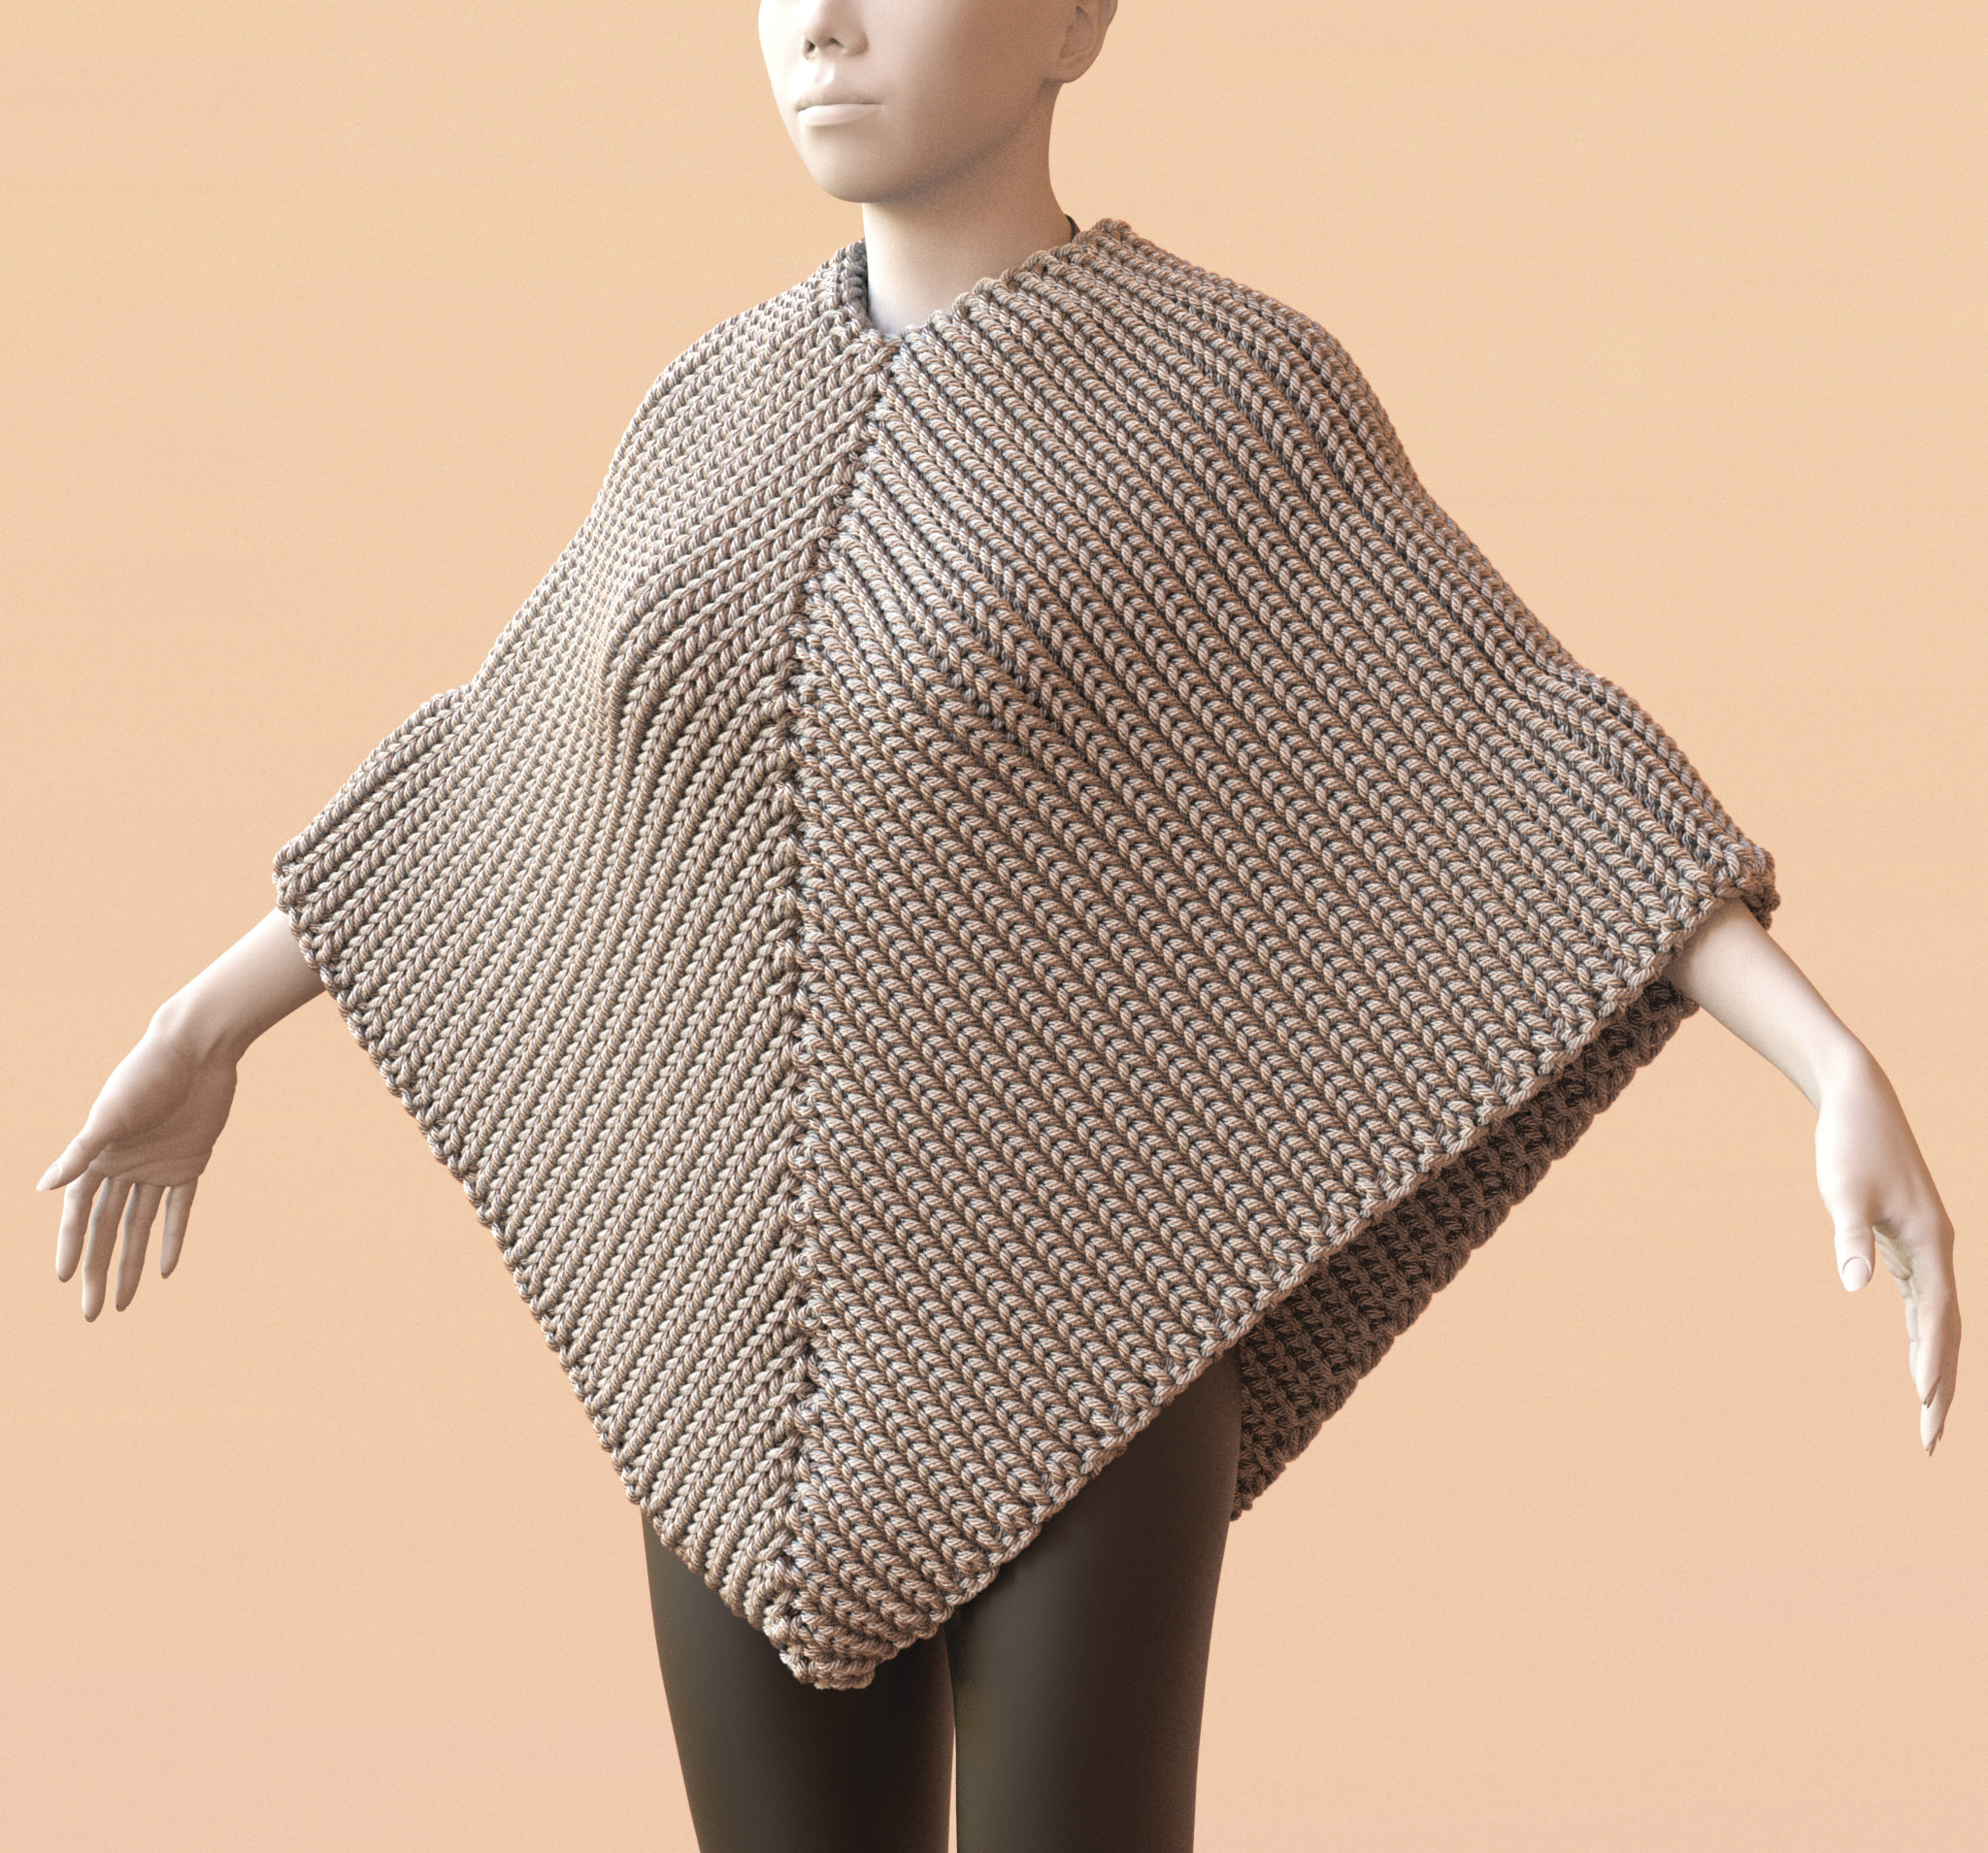 How To Knit A Poncho For Beginners Pattern : poncho   Mitsuba Development Blog